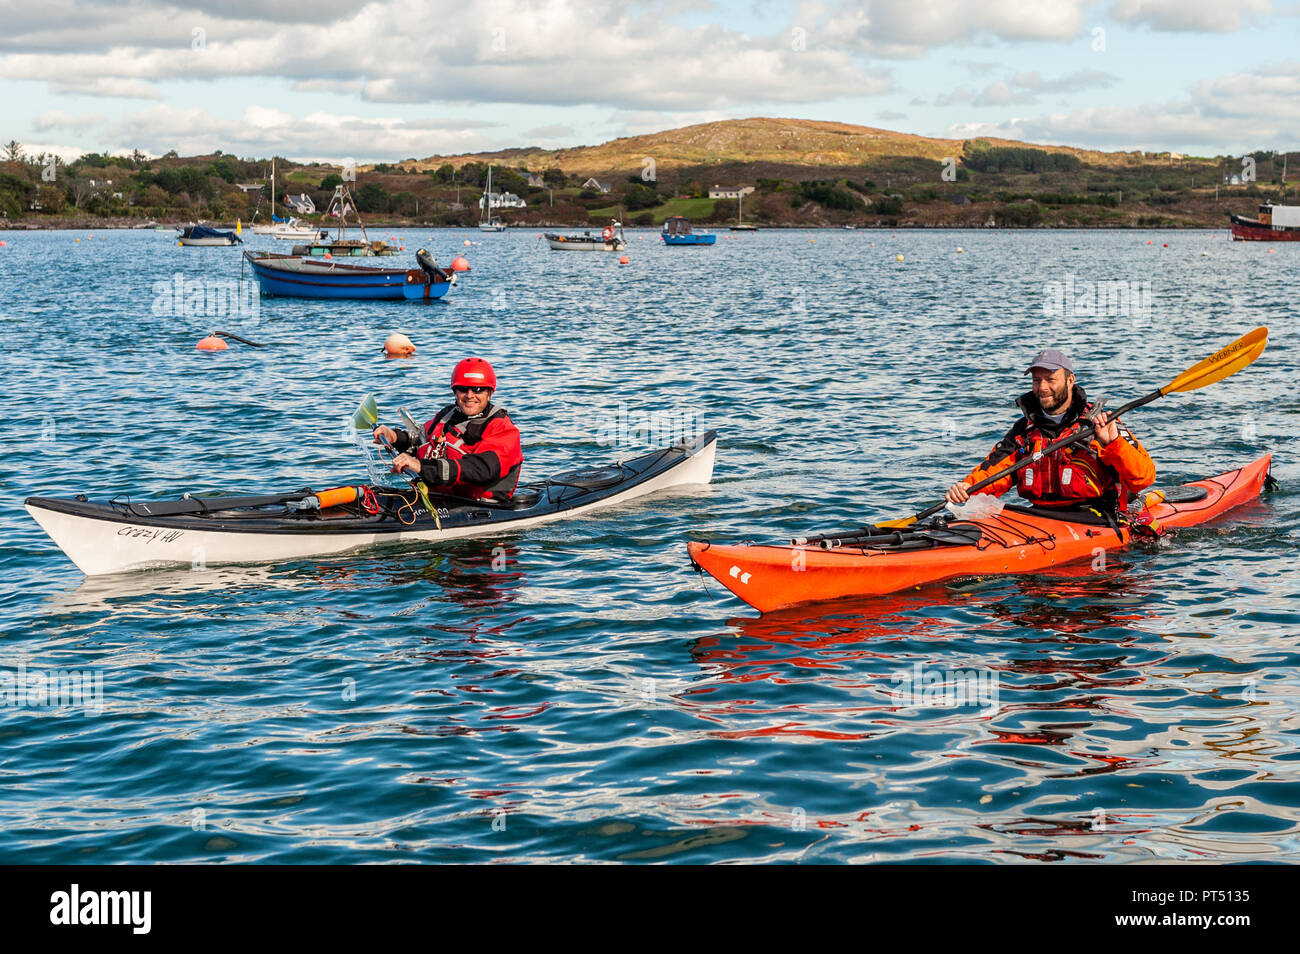 Schull, West Cork, Ireland. 6th Oct, 2018.  On a beautiful day in West Cork, kayakers prepare to go kayaking. Today's activities culminate this evening in a dinner dance at the Schull Harbour Hotel. Credit: Andy Gibson/Alamy Live News. - Stock Image